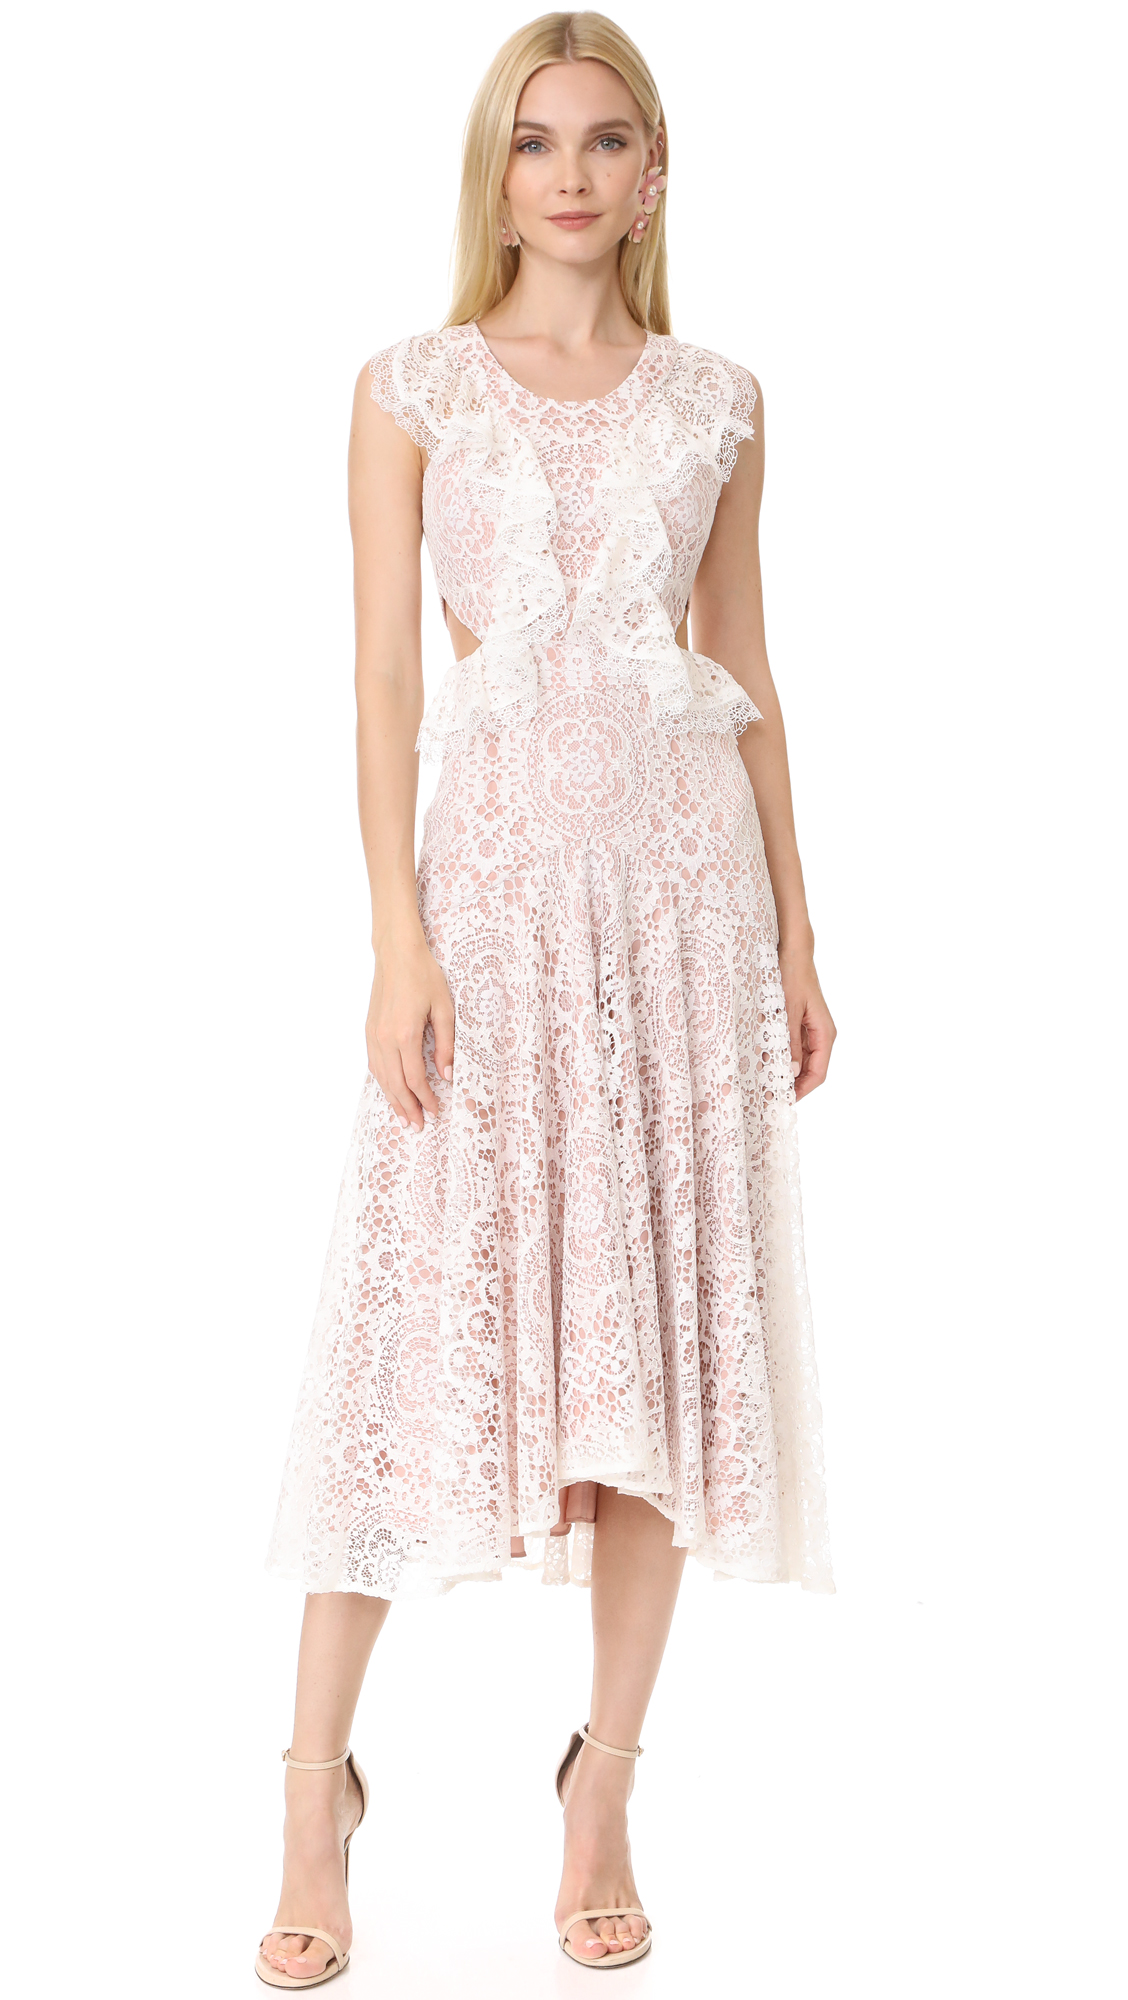 Alexis Aldridge Dress - Ivory Lace